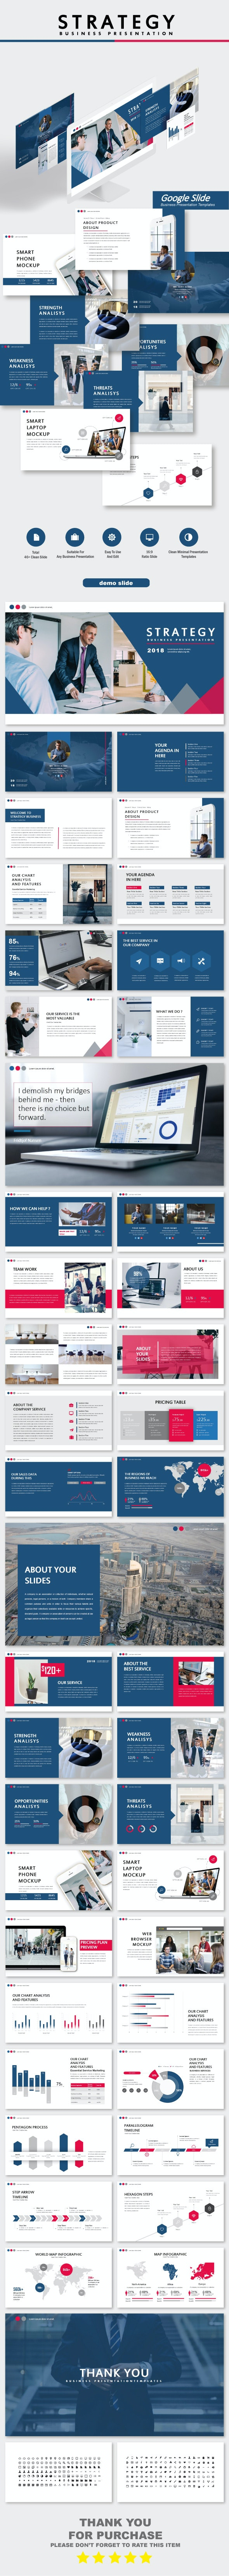 Strategy Business Google Slide Templates - Business PowerPoint Templates